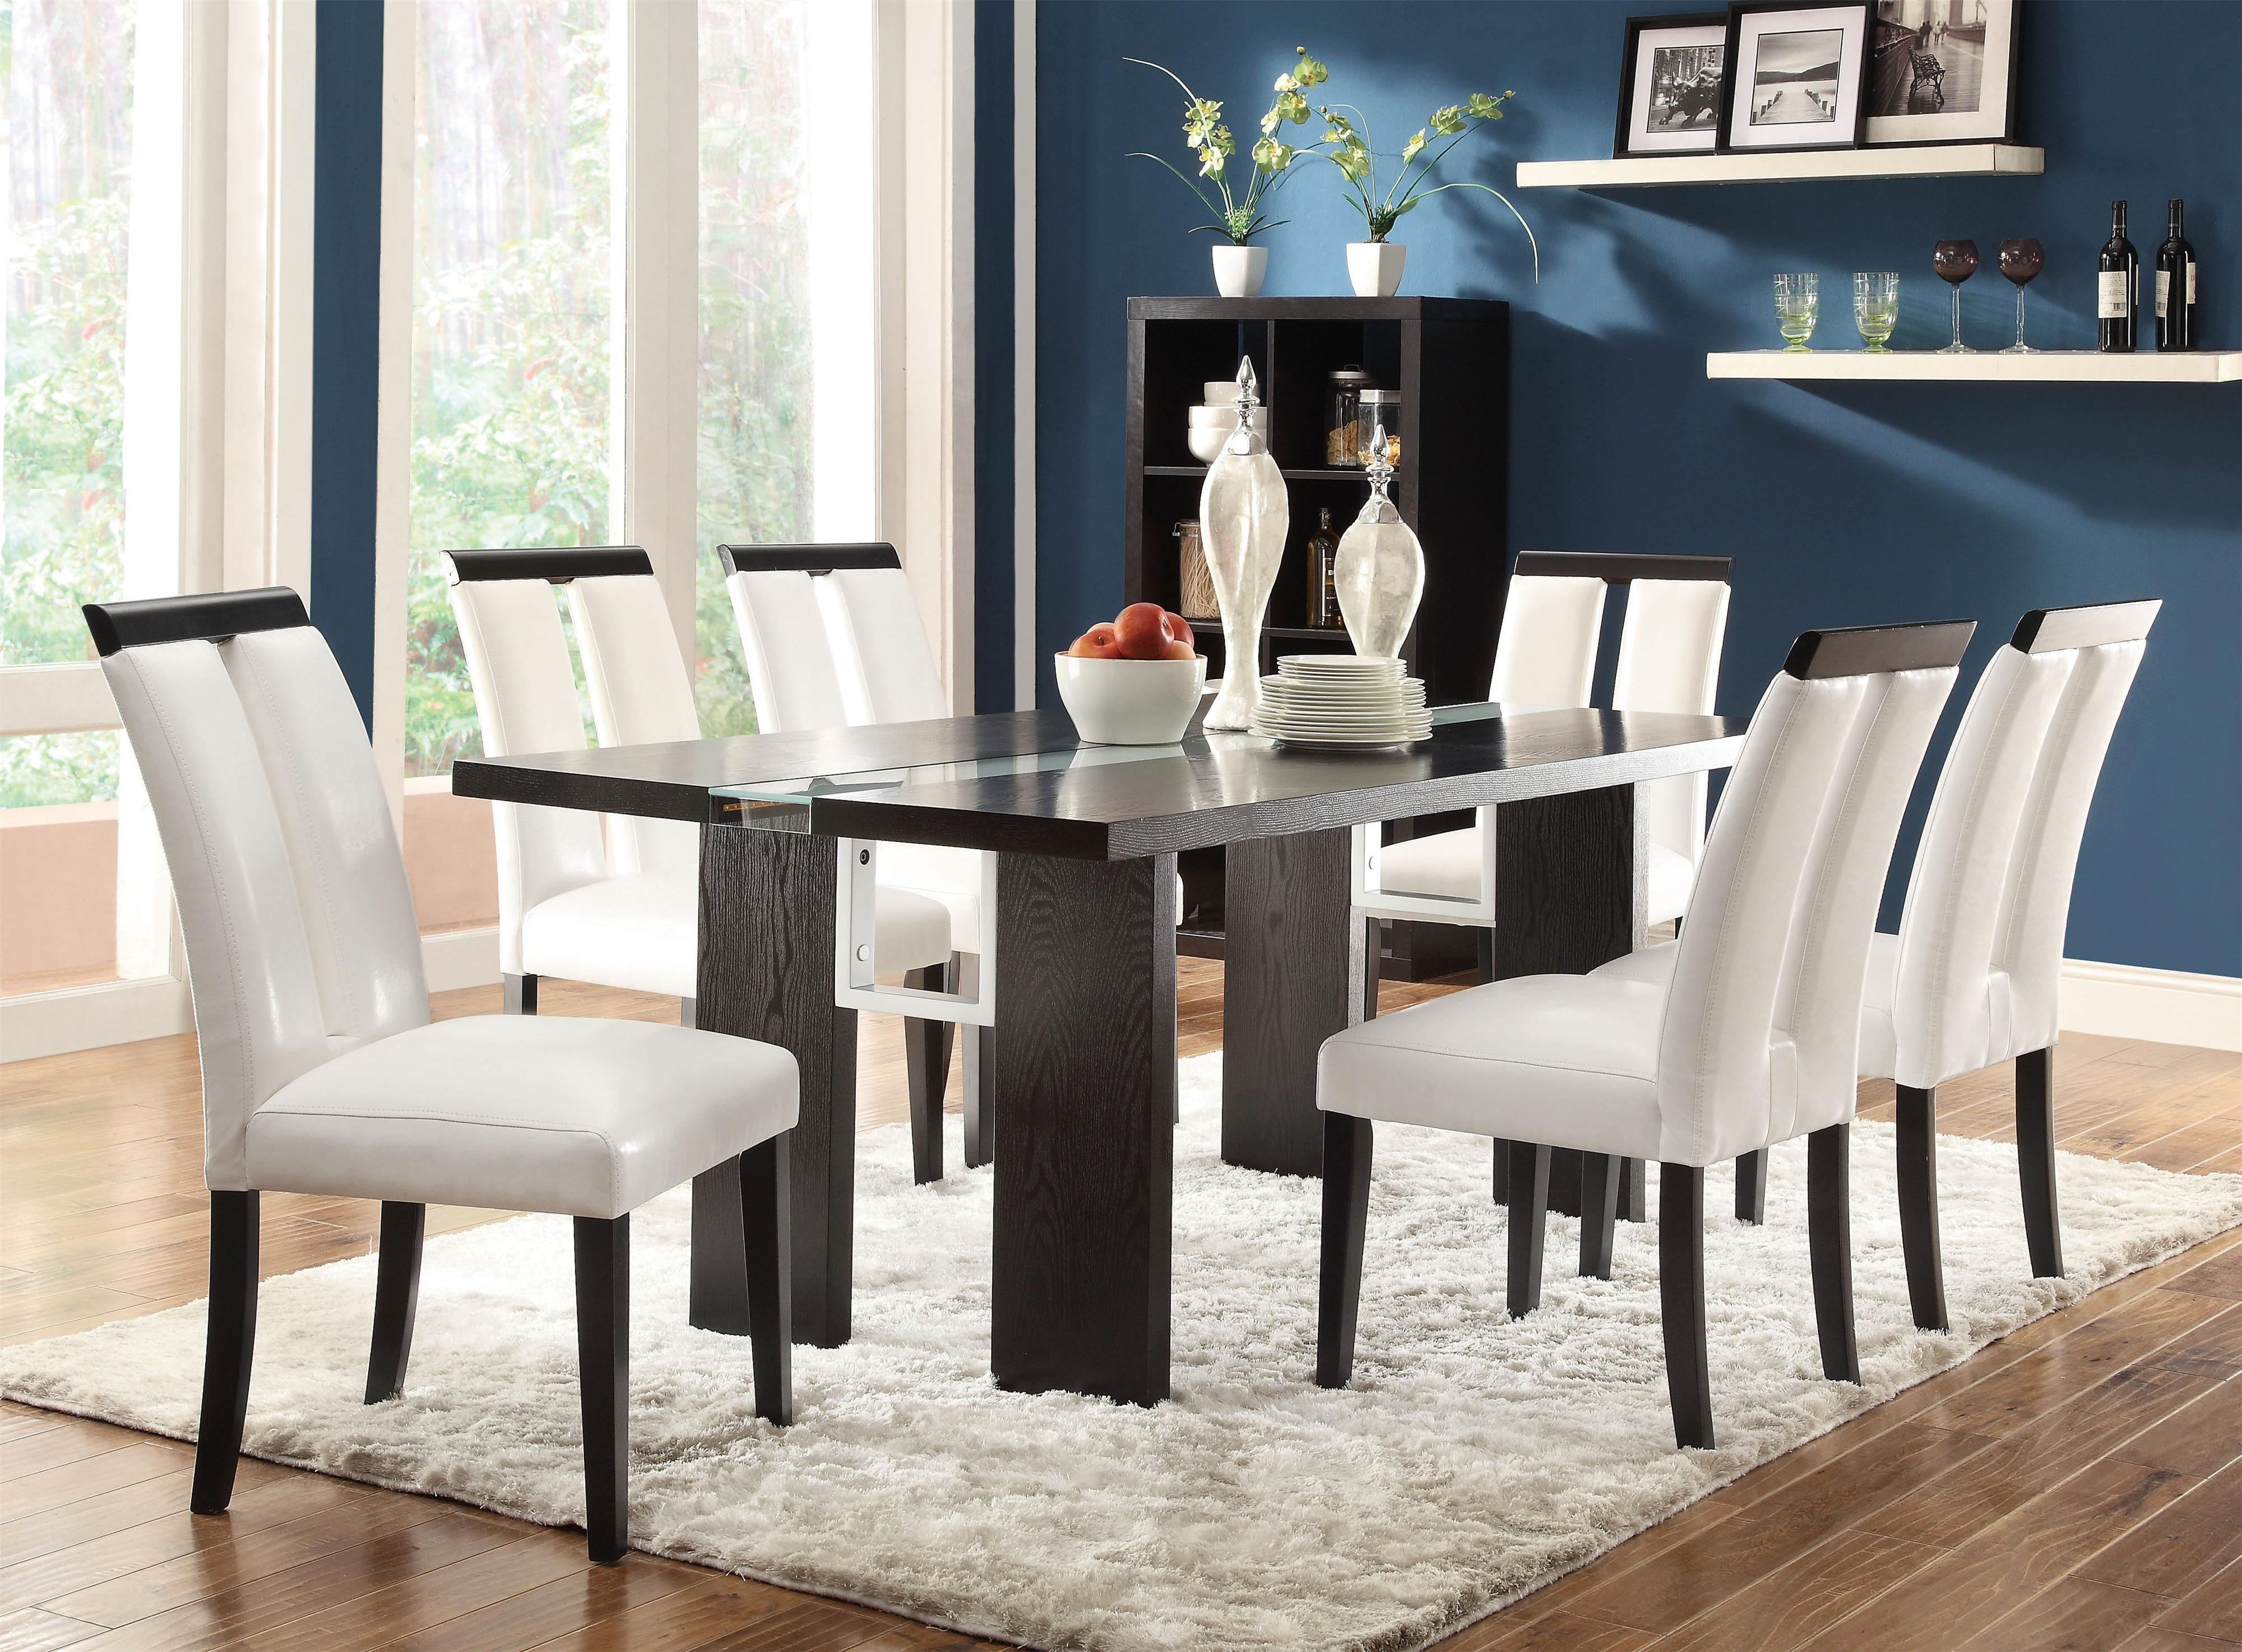 Perfect 7 Piece Set With LED Lit Dining Table